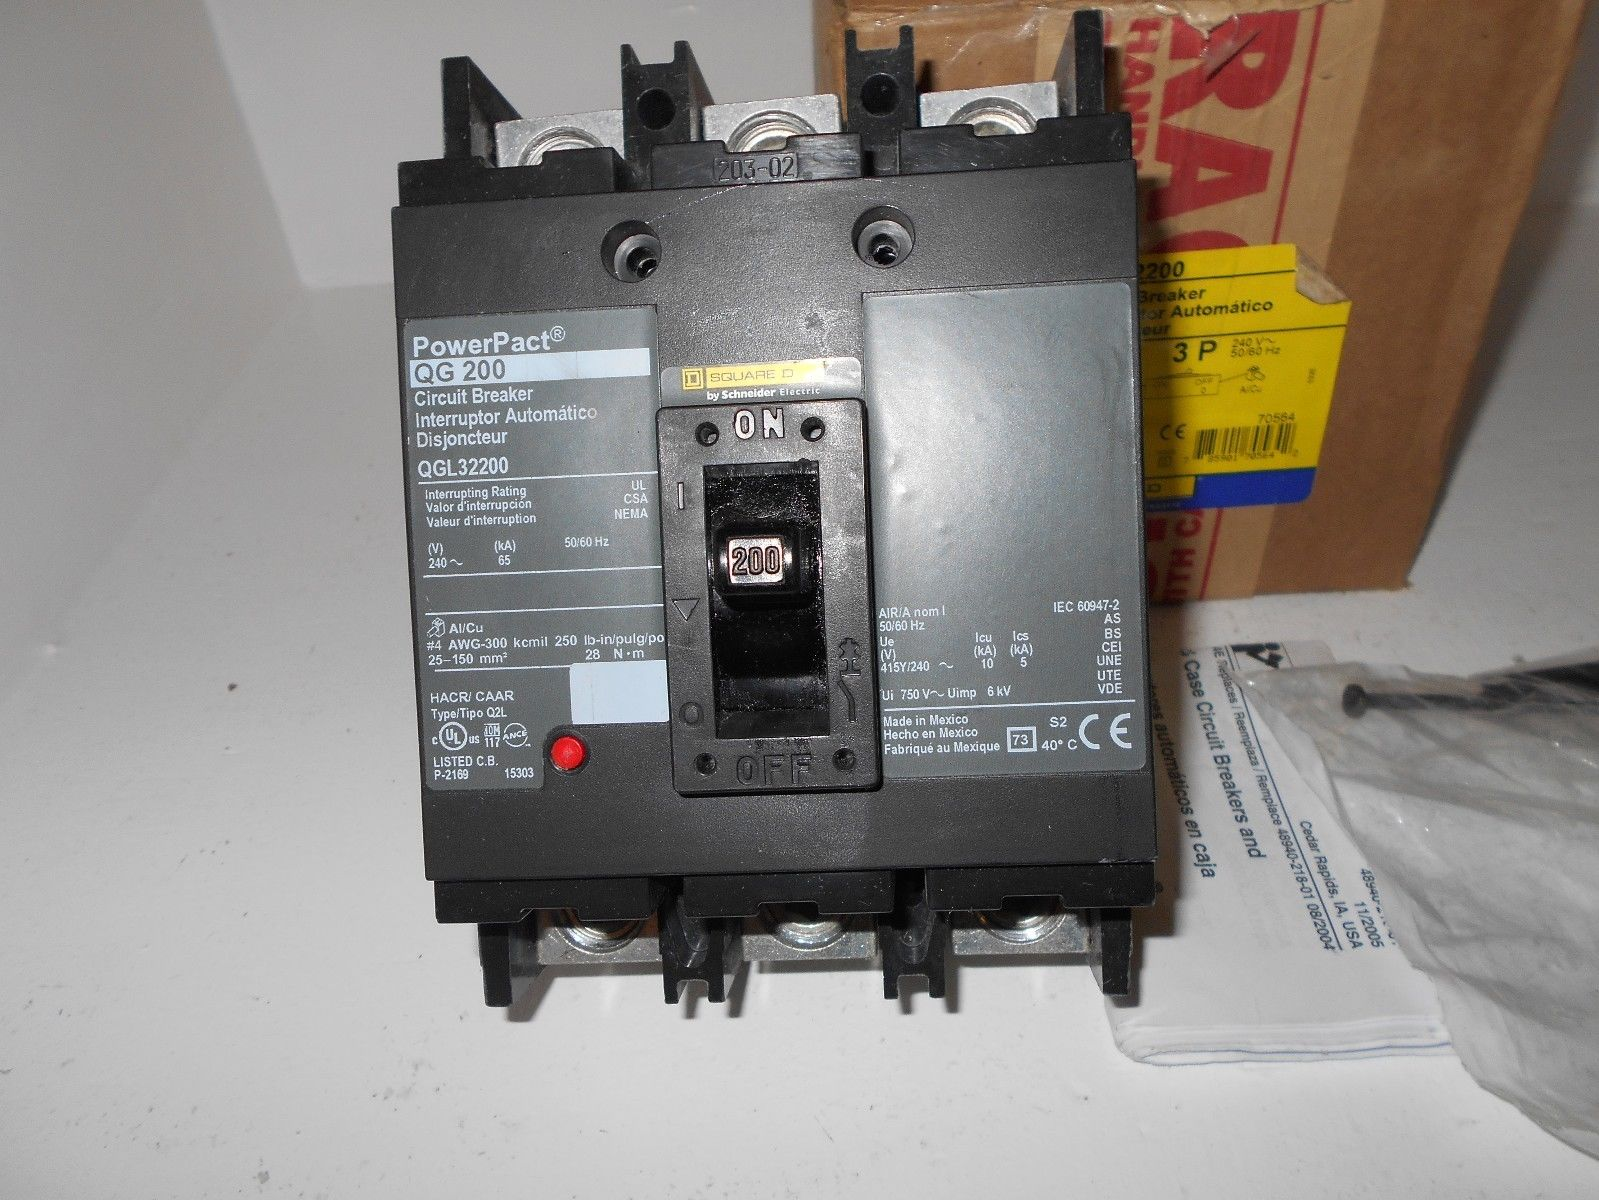 New Circuit Breaker 200 Ampere Worksheet And Wiring Diagram Image Library Hom2200 Nib Square D Qgl32200 3 Pole Amp 240 Volt Type Qg 65k Rh Poweredelectricsupply Com Price Philippines